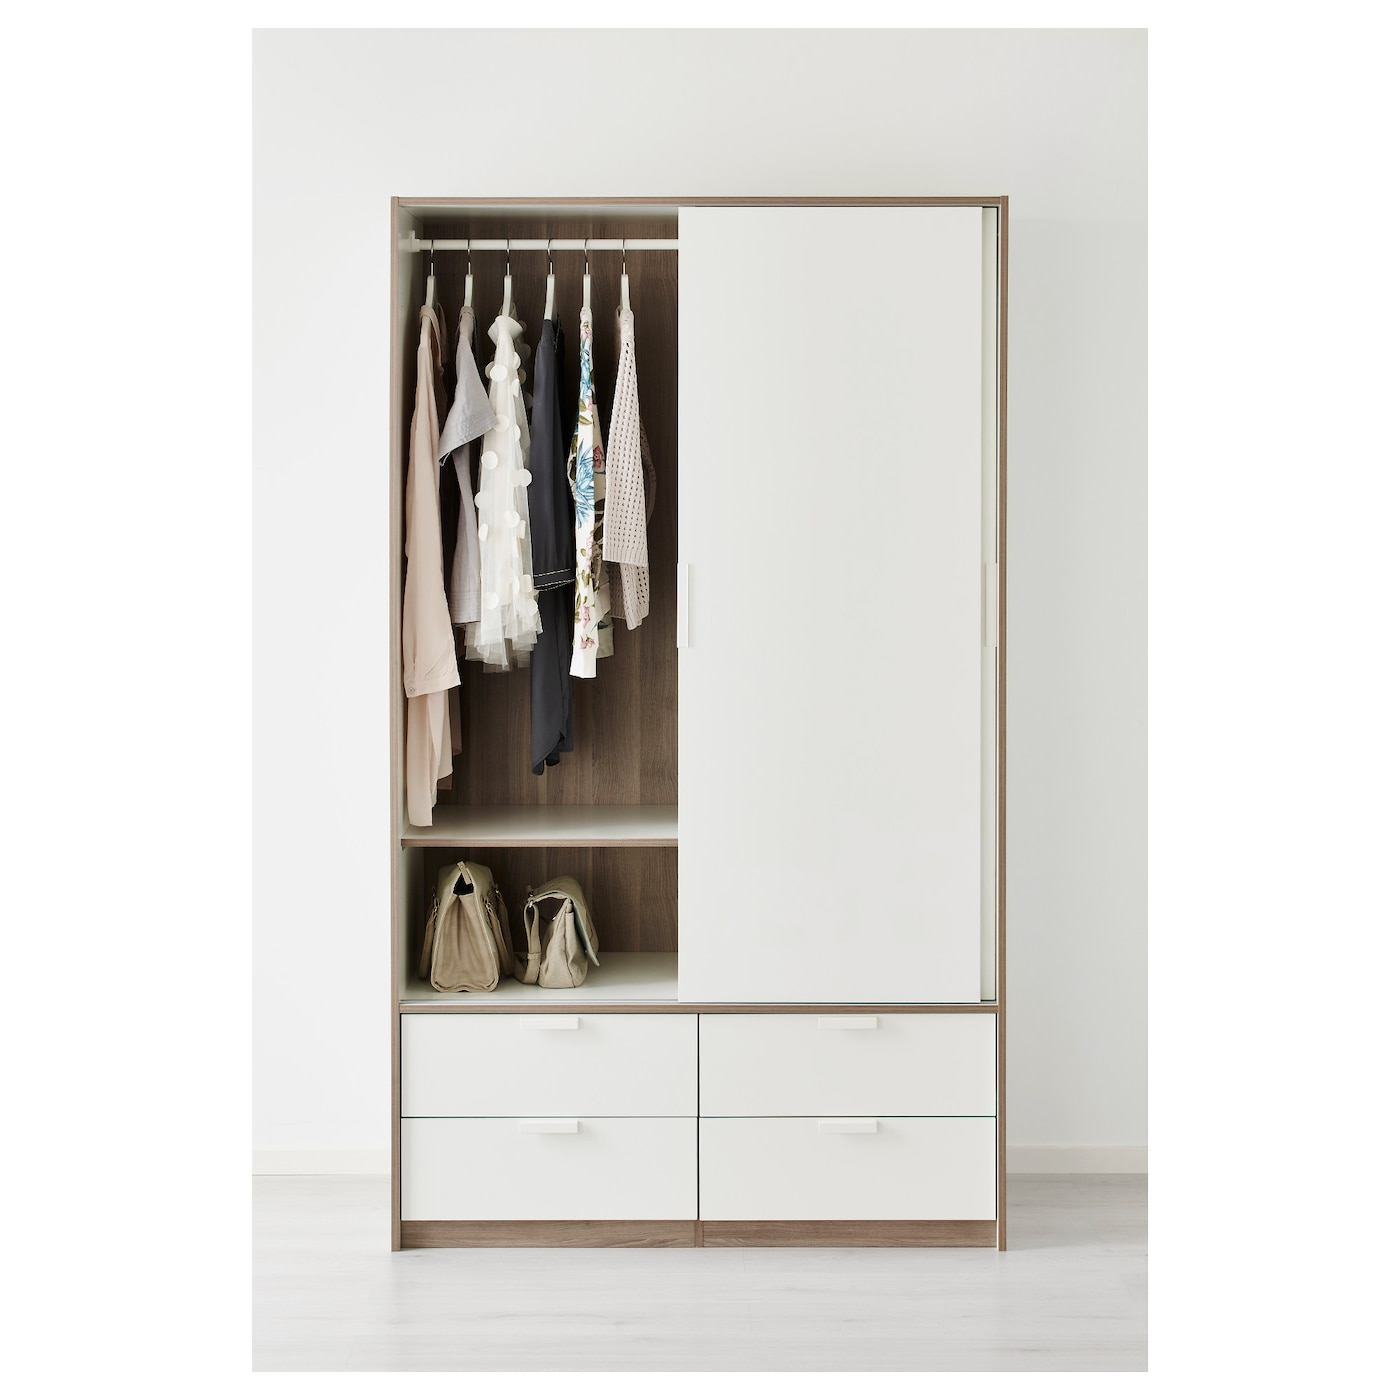 trysil wardrobe w sliding doors 4 drawers white 118 x 61 x 202 cm ikea. Black Bedroom Furniture Sets. Home Design Ideas